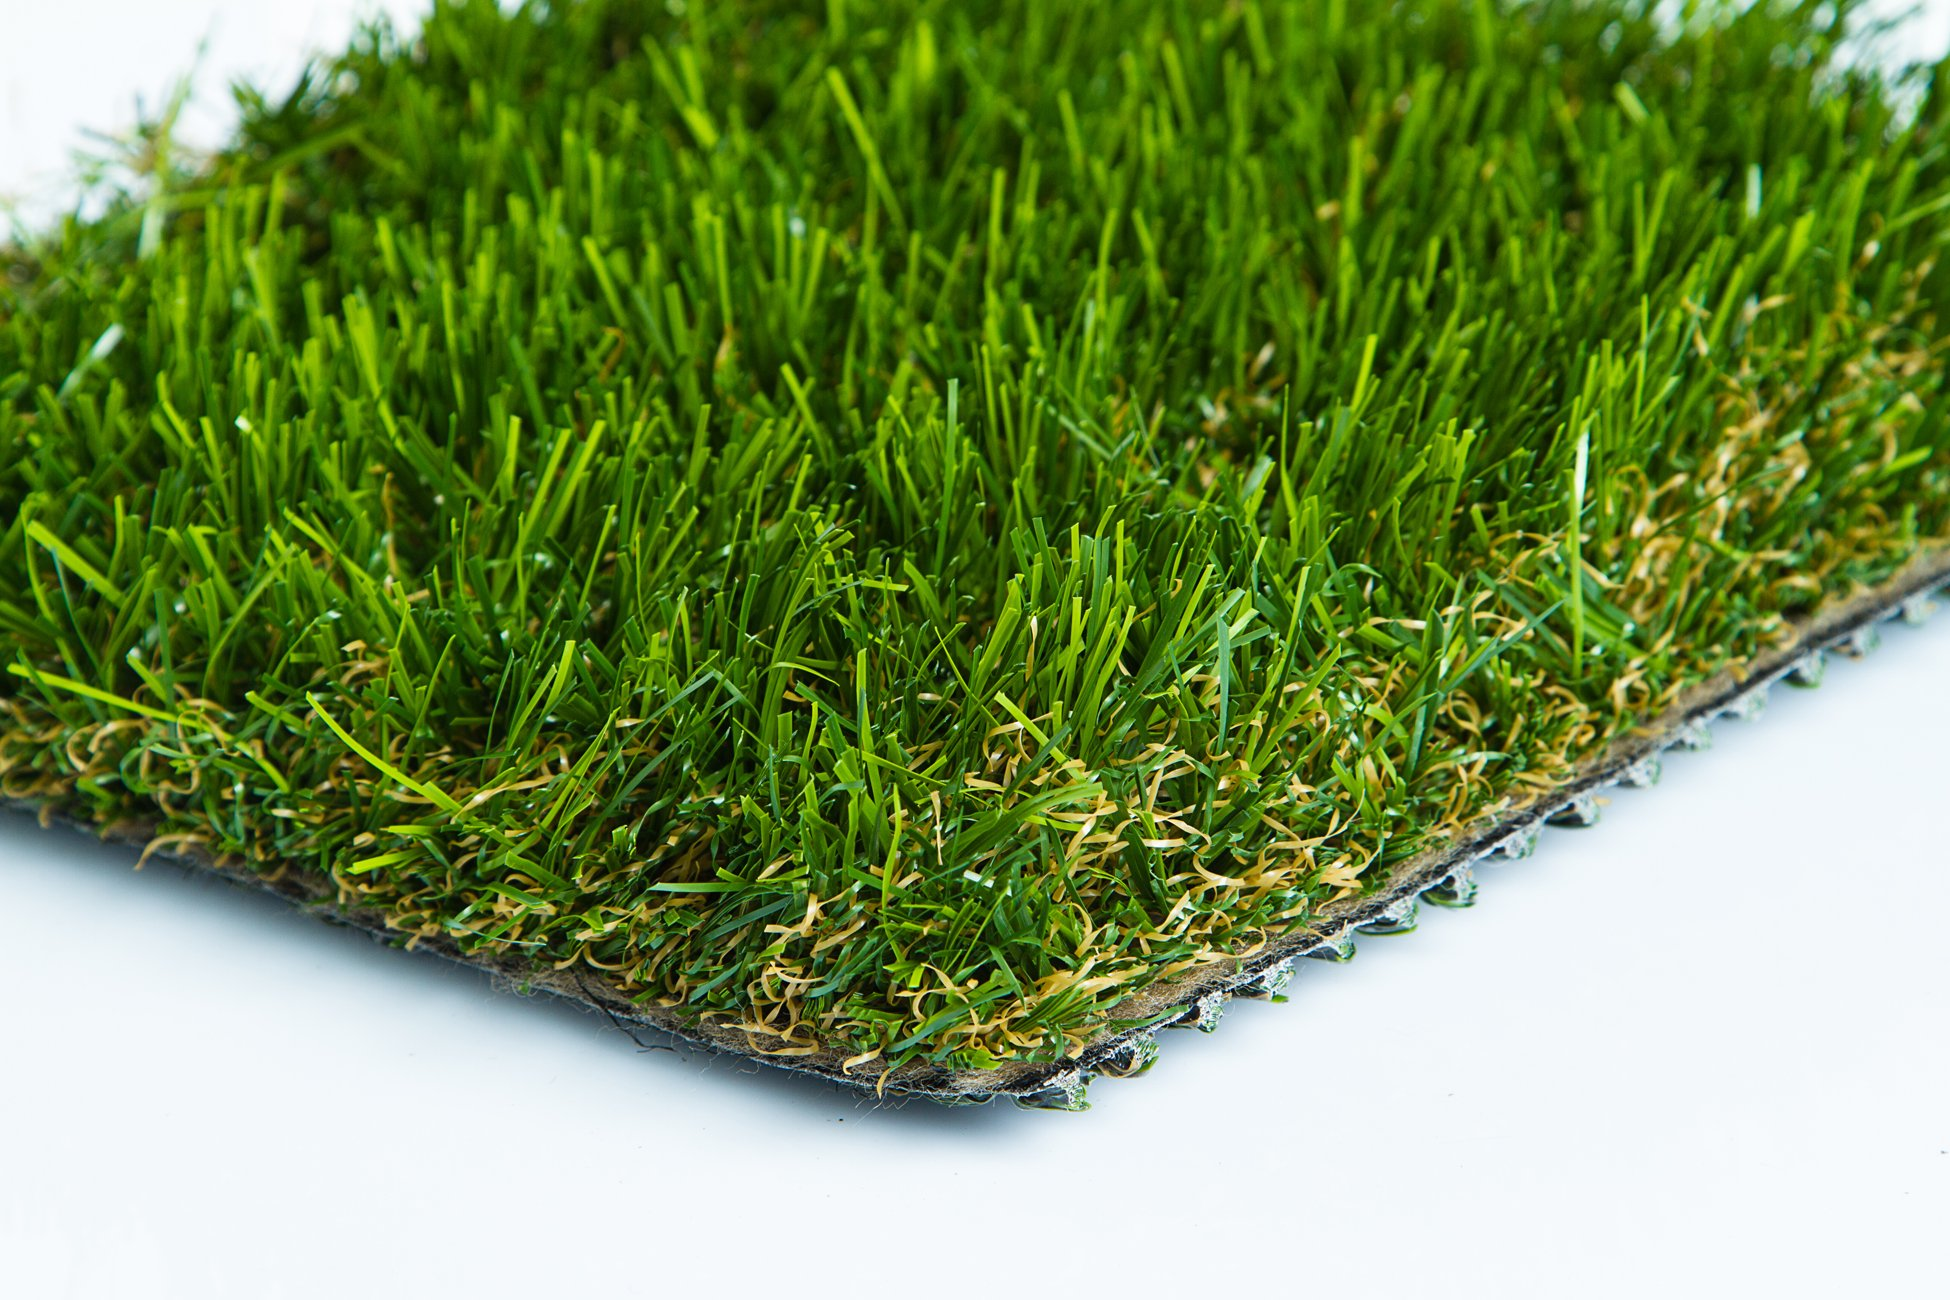 New 15' foot Roll Artificial Grass Turf Synthetic Fescue Pet SALE! Many Sizes! (64 oz 15' x 50' = 750 Sq feet) by Artificial Grass Wholesalers